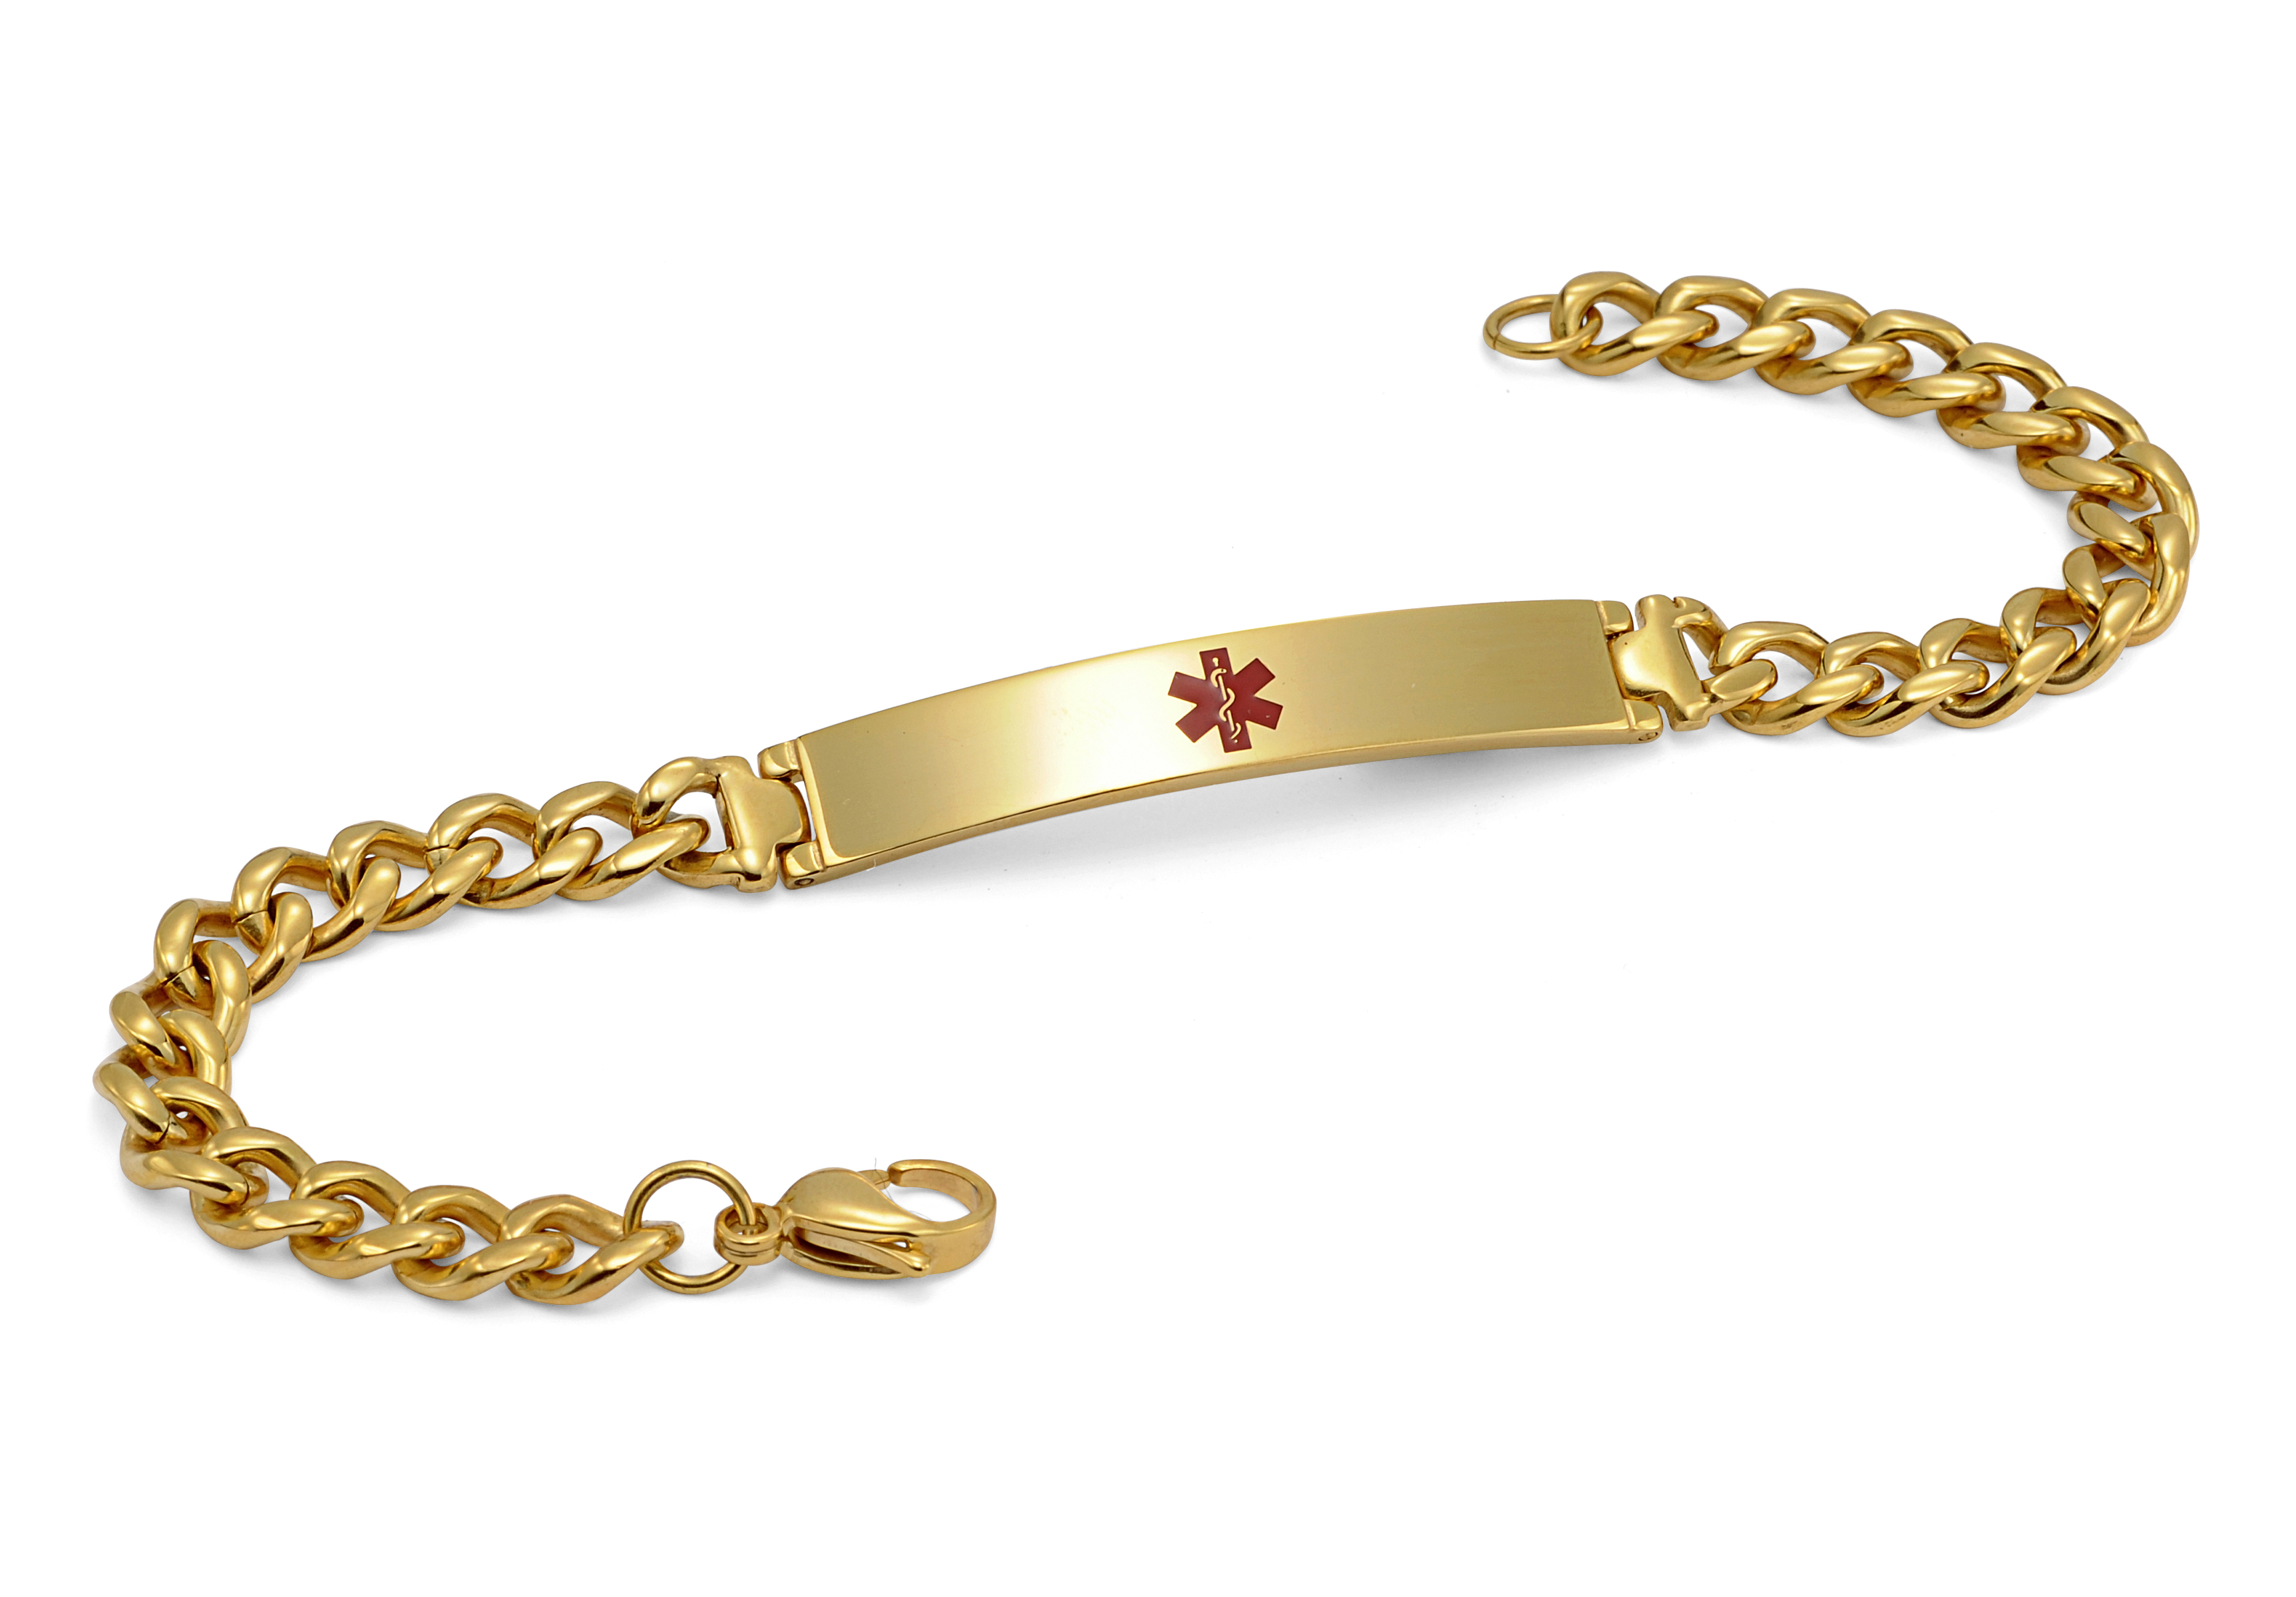 Gold Plated Bracelet - Medical ID